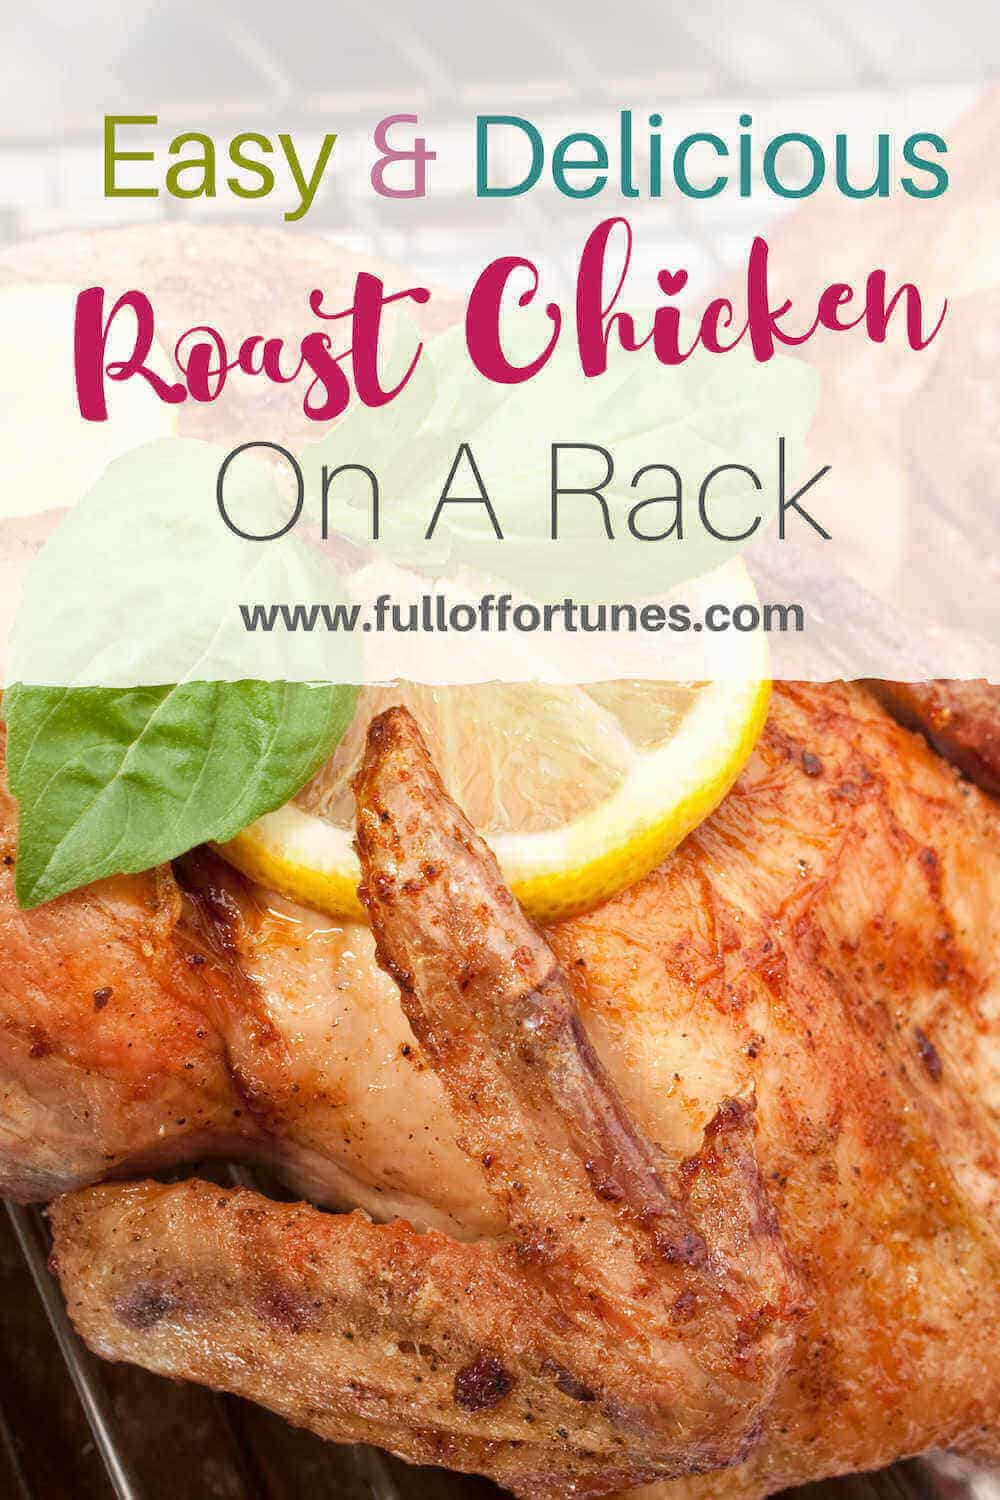 Roast Chicken On A Rack